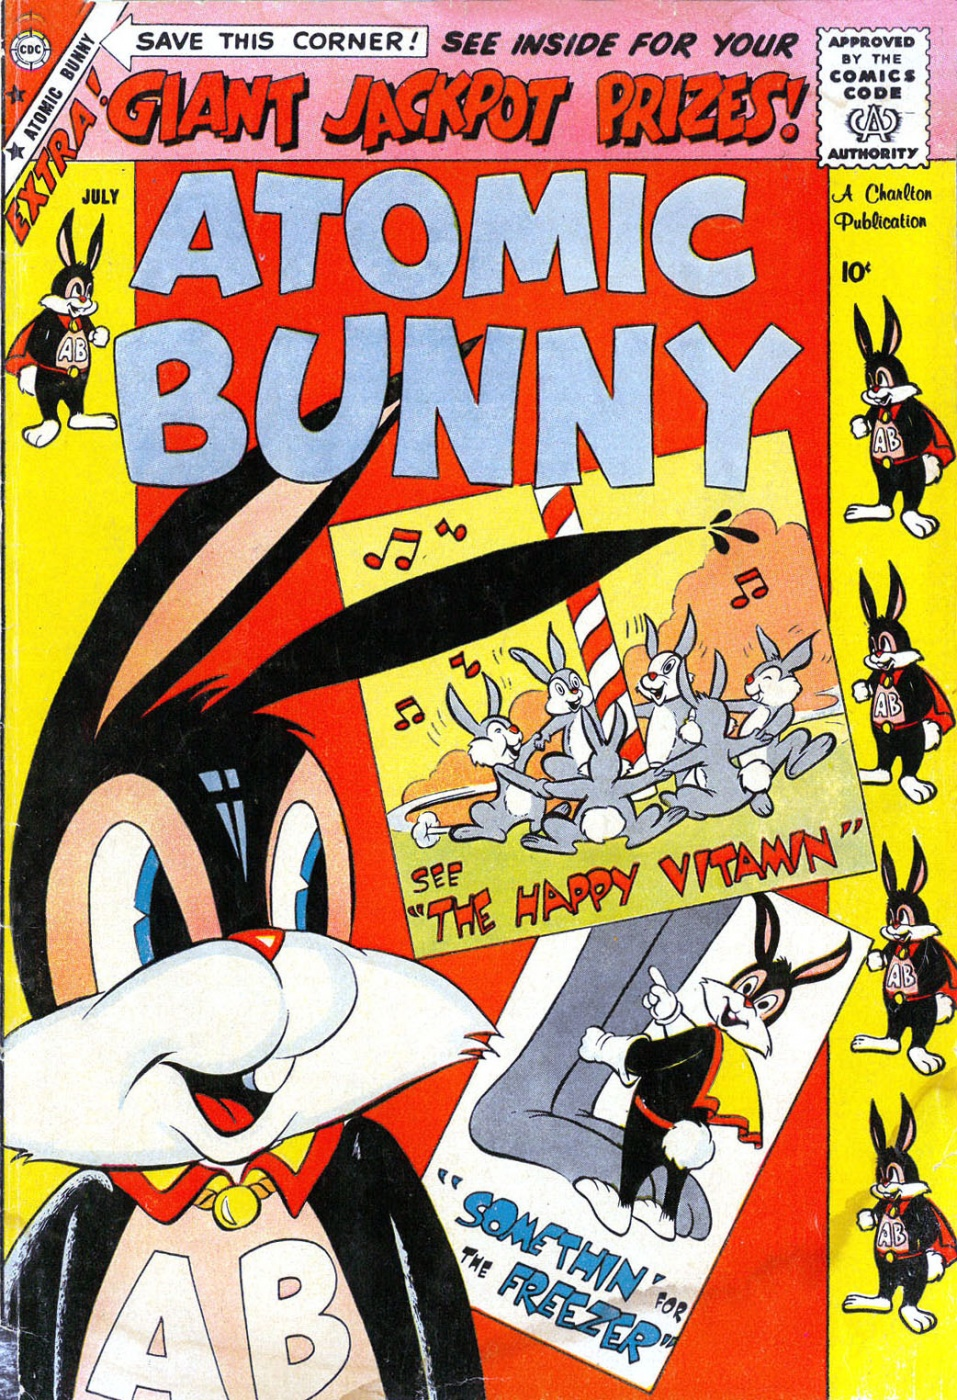 Comic Strips: Atomic Bunny #3